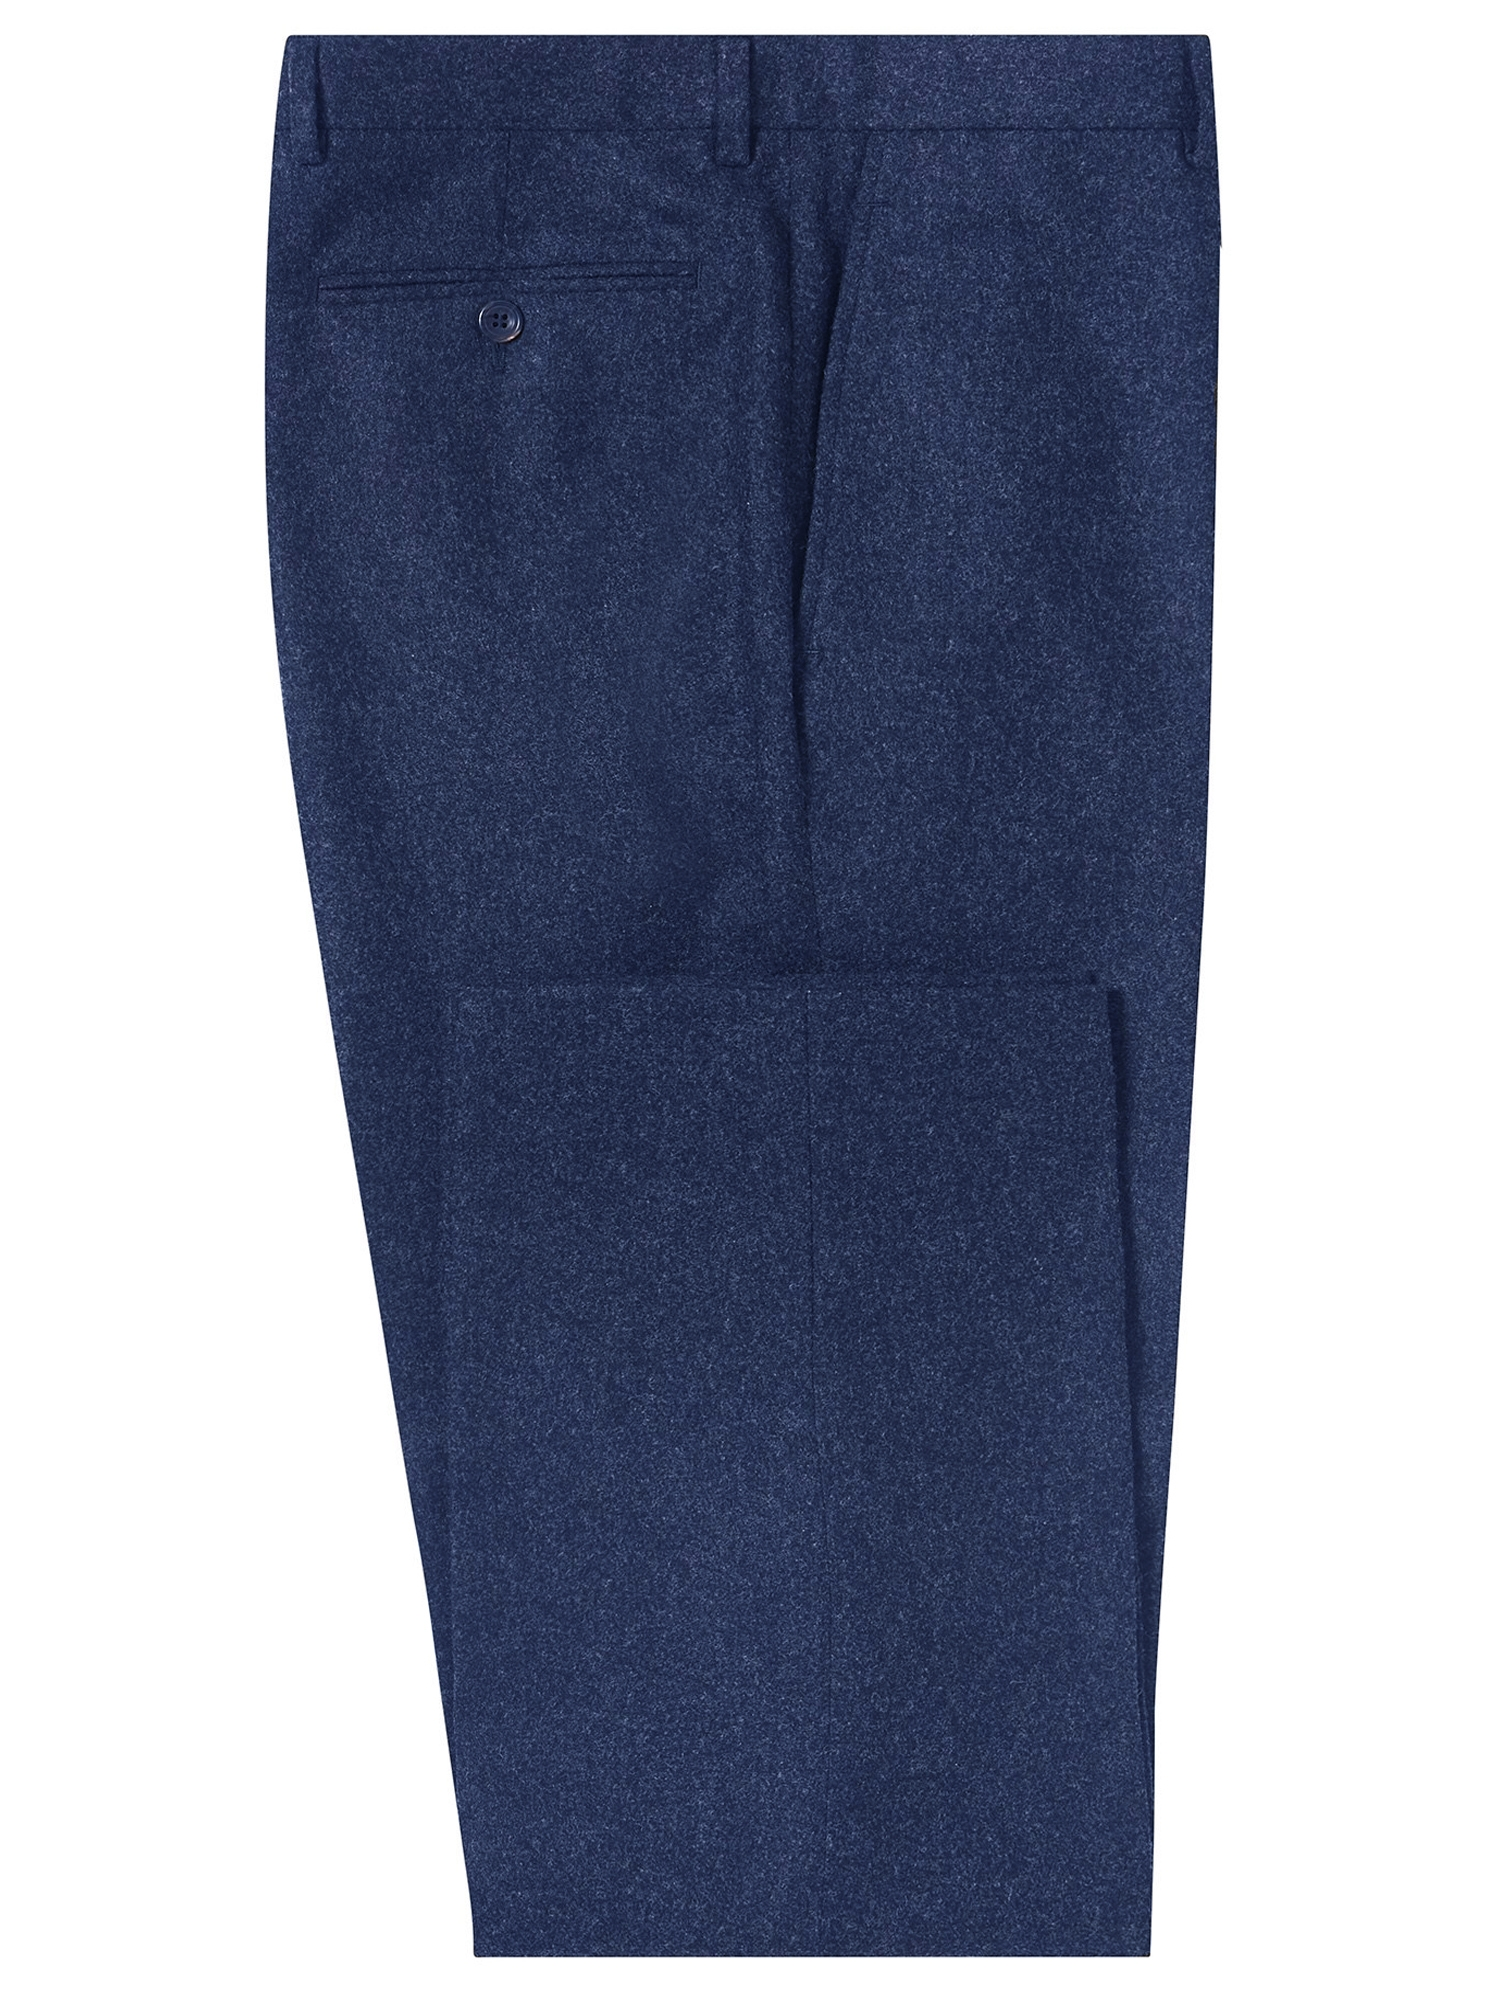 CHESTER BARRIE BLUE WEST-OF-ENGLAND FLANNEL TROUSERS